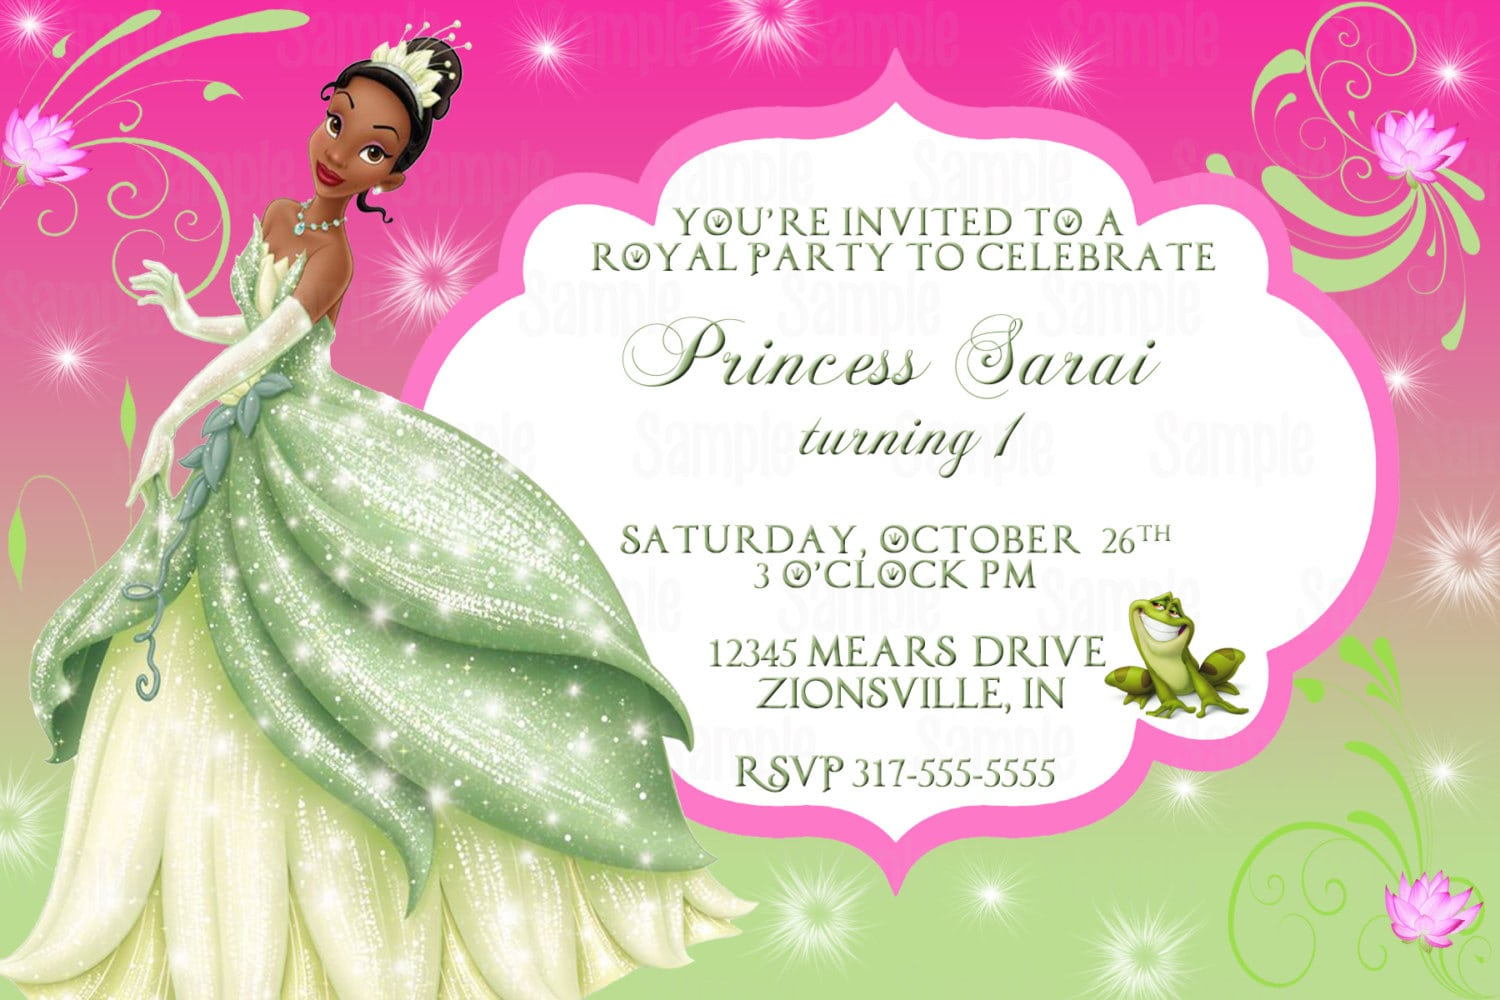 Frog Wedding Invitations: Princess And The Frog Invitation Template